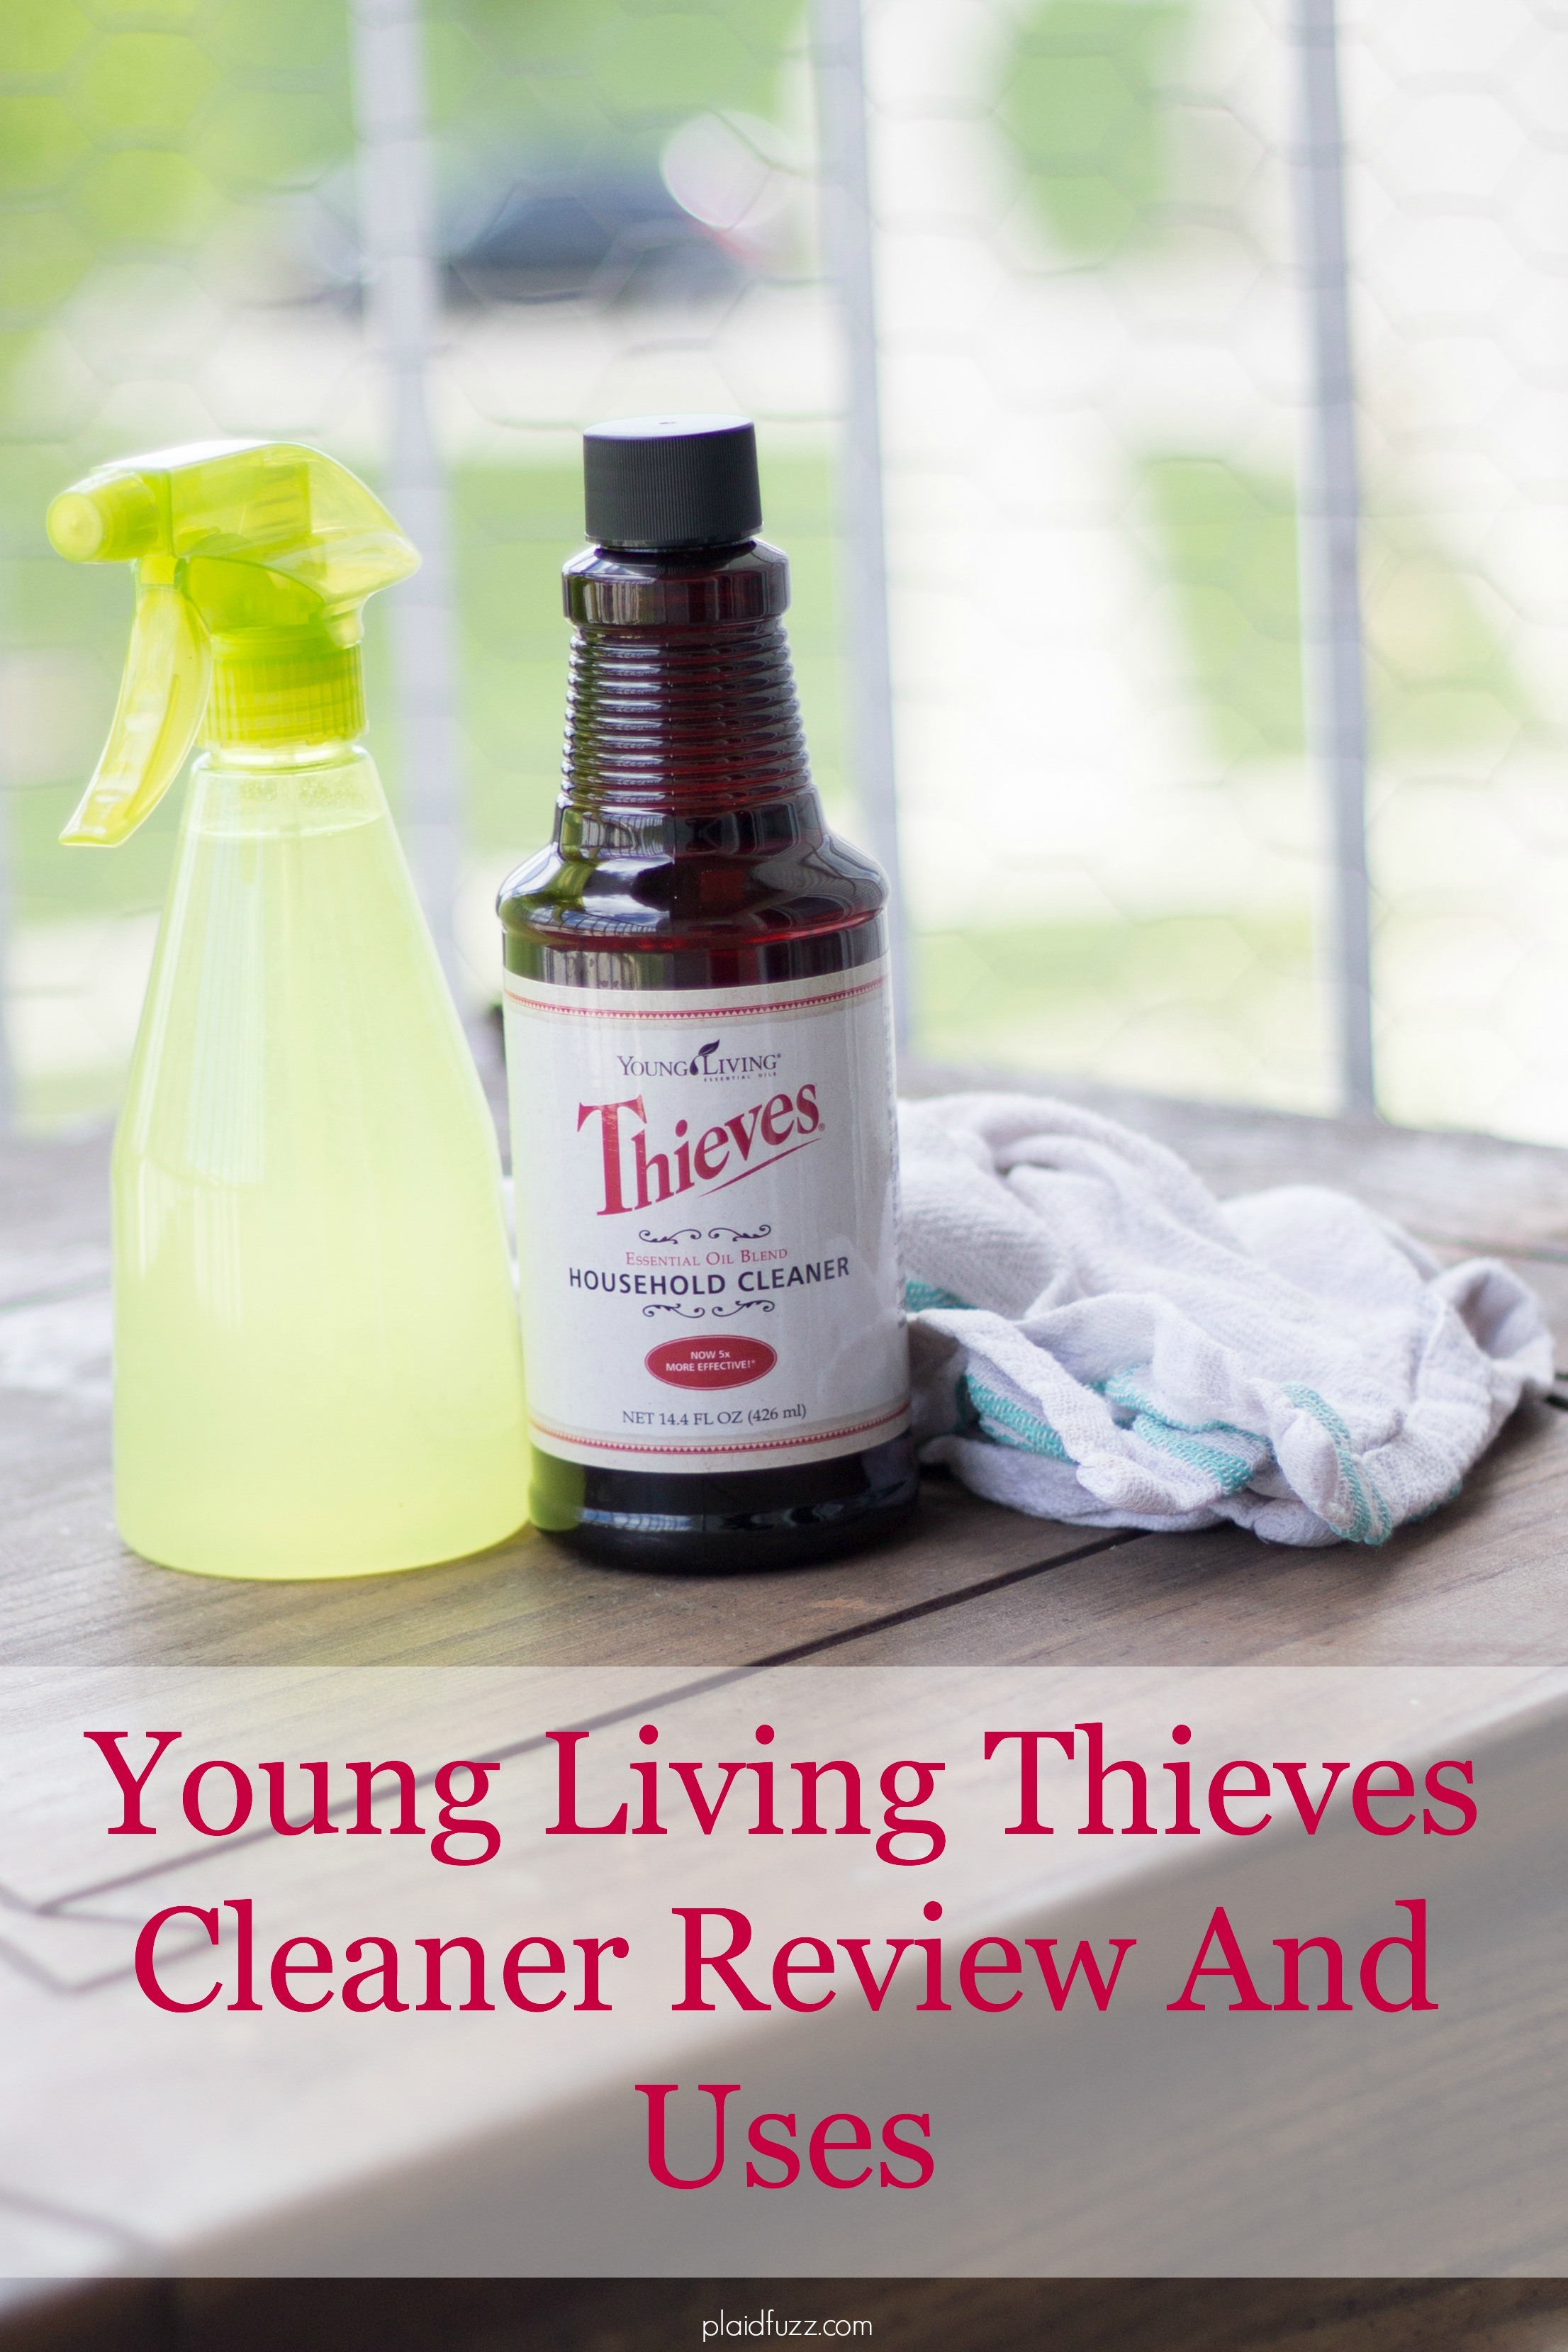 Young Living Thieves Cleaner Review and Uses